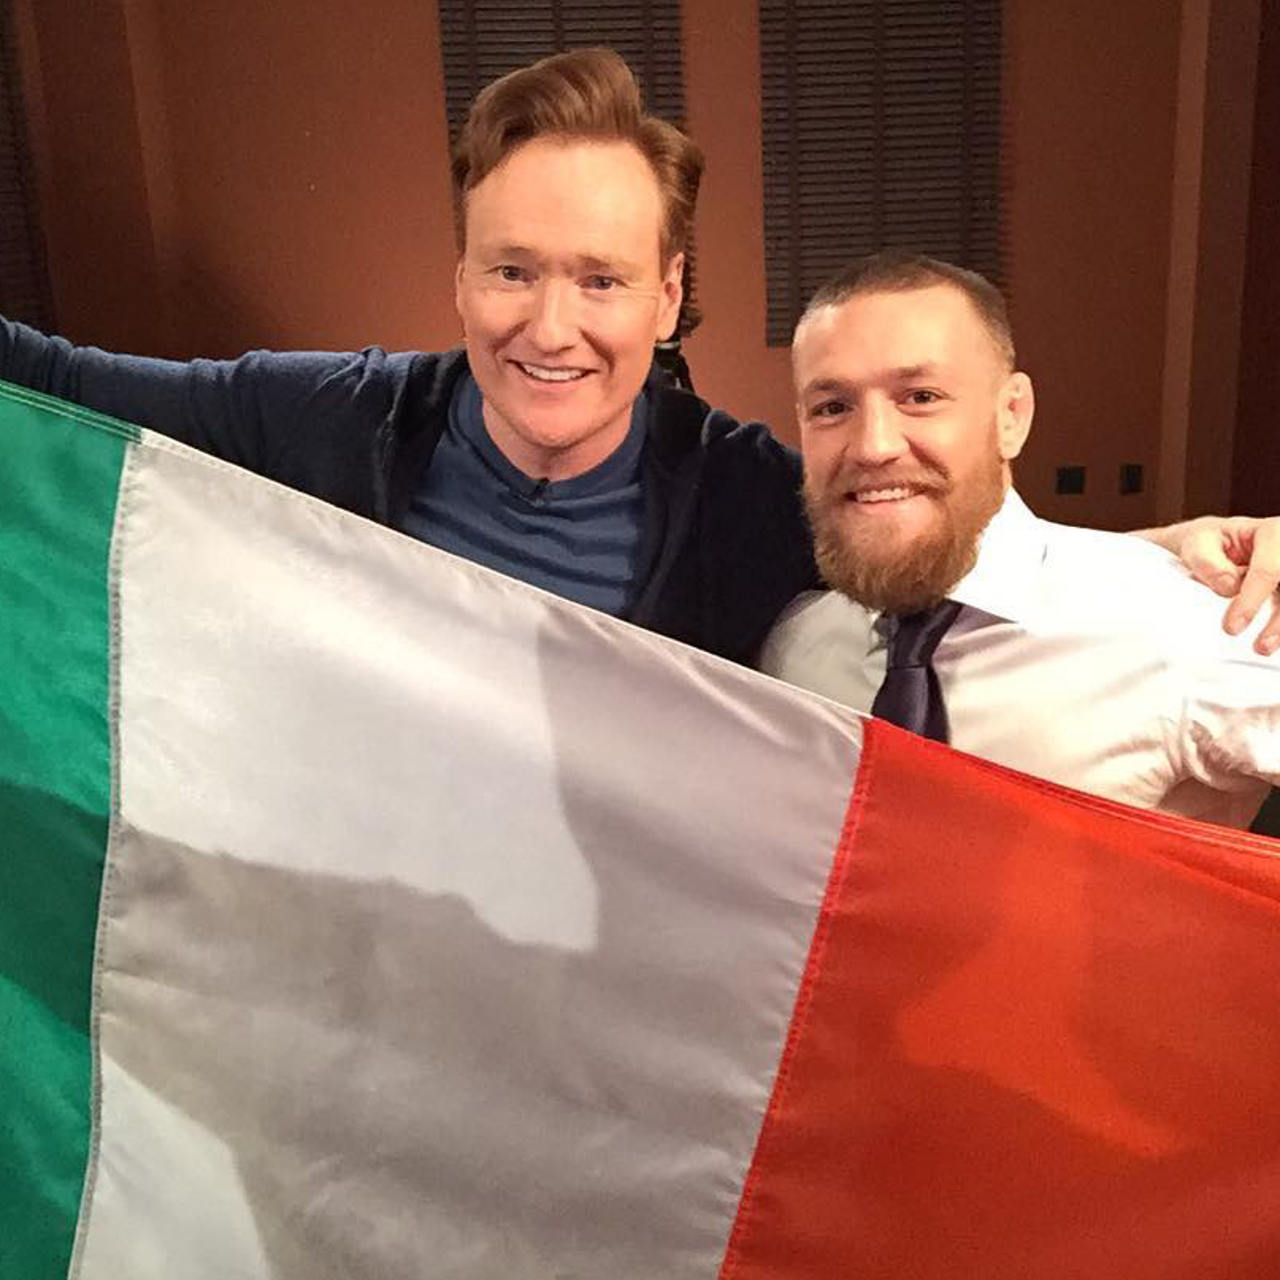 Conan O'Brien with first cousin Conor McGregor